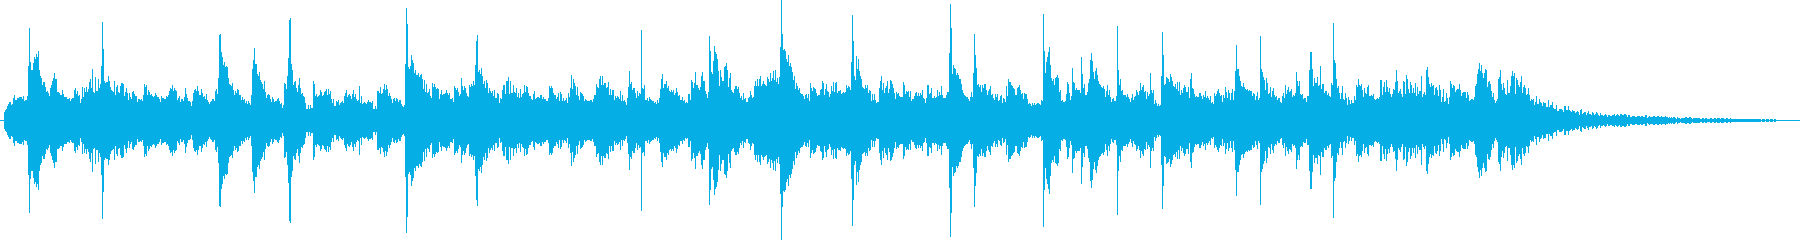 A mysterious jingle of Indian and Middle Eastern origin's reproduced waveform